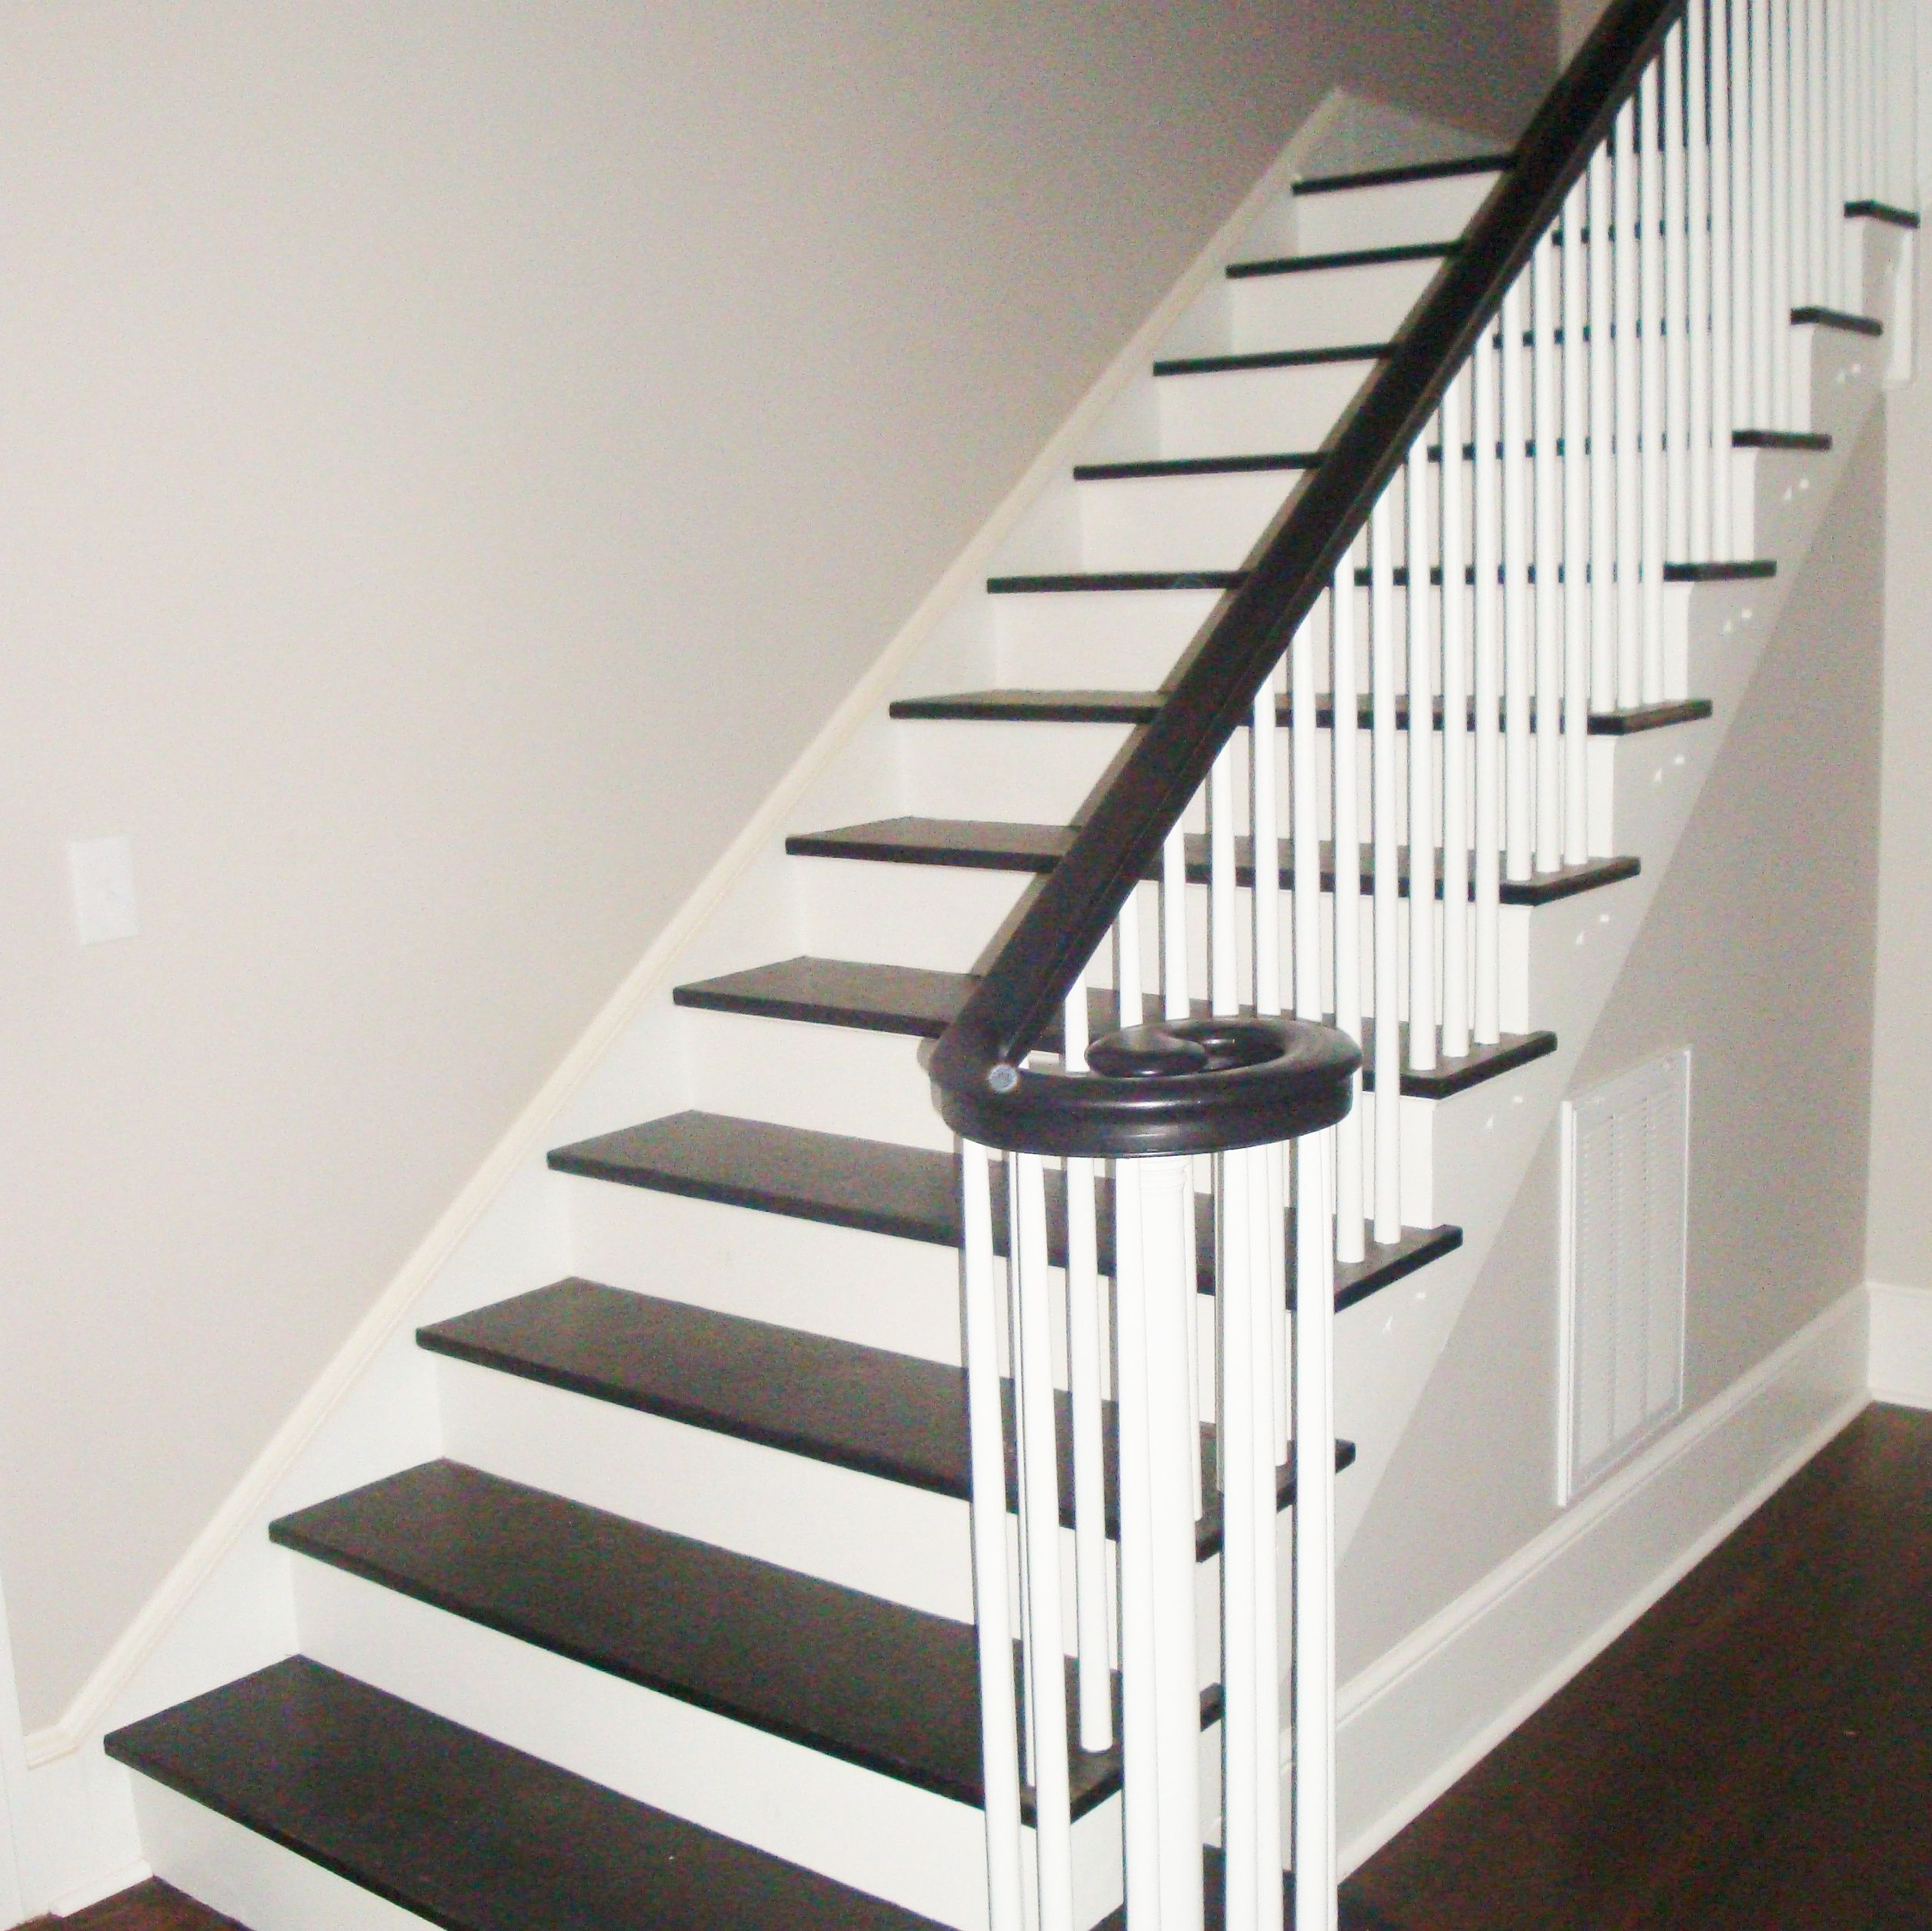 25 Pretty Painted Stairs Ideas: They Show The Dirt, But I Love Them